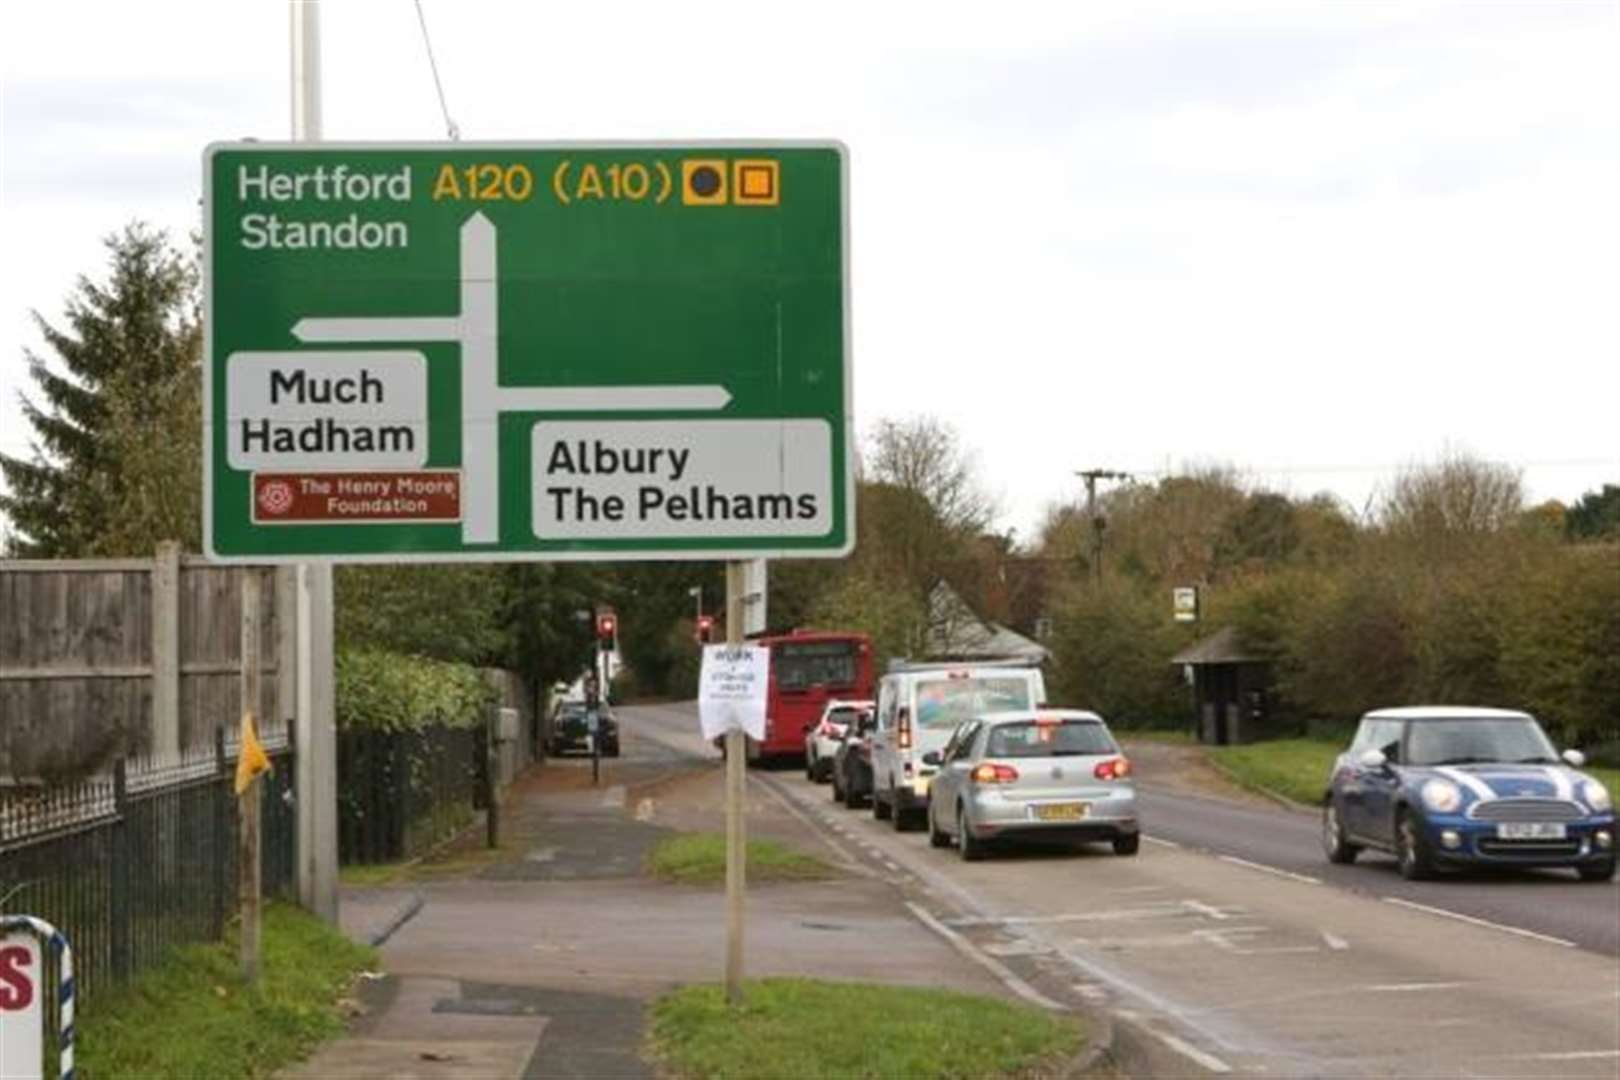 Compulsory purchase order challenges delay for A120 bypass plan